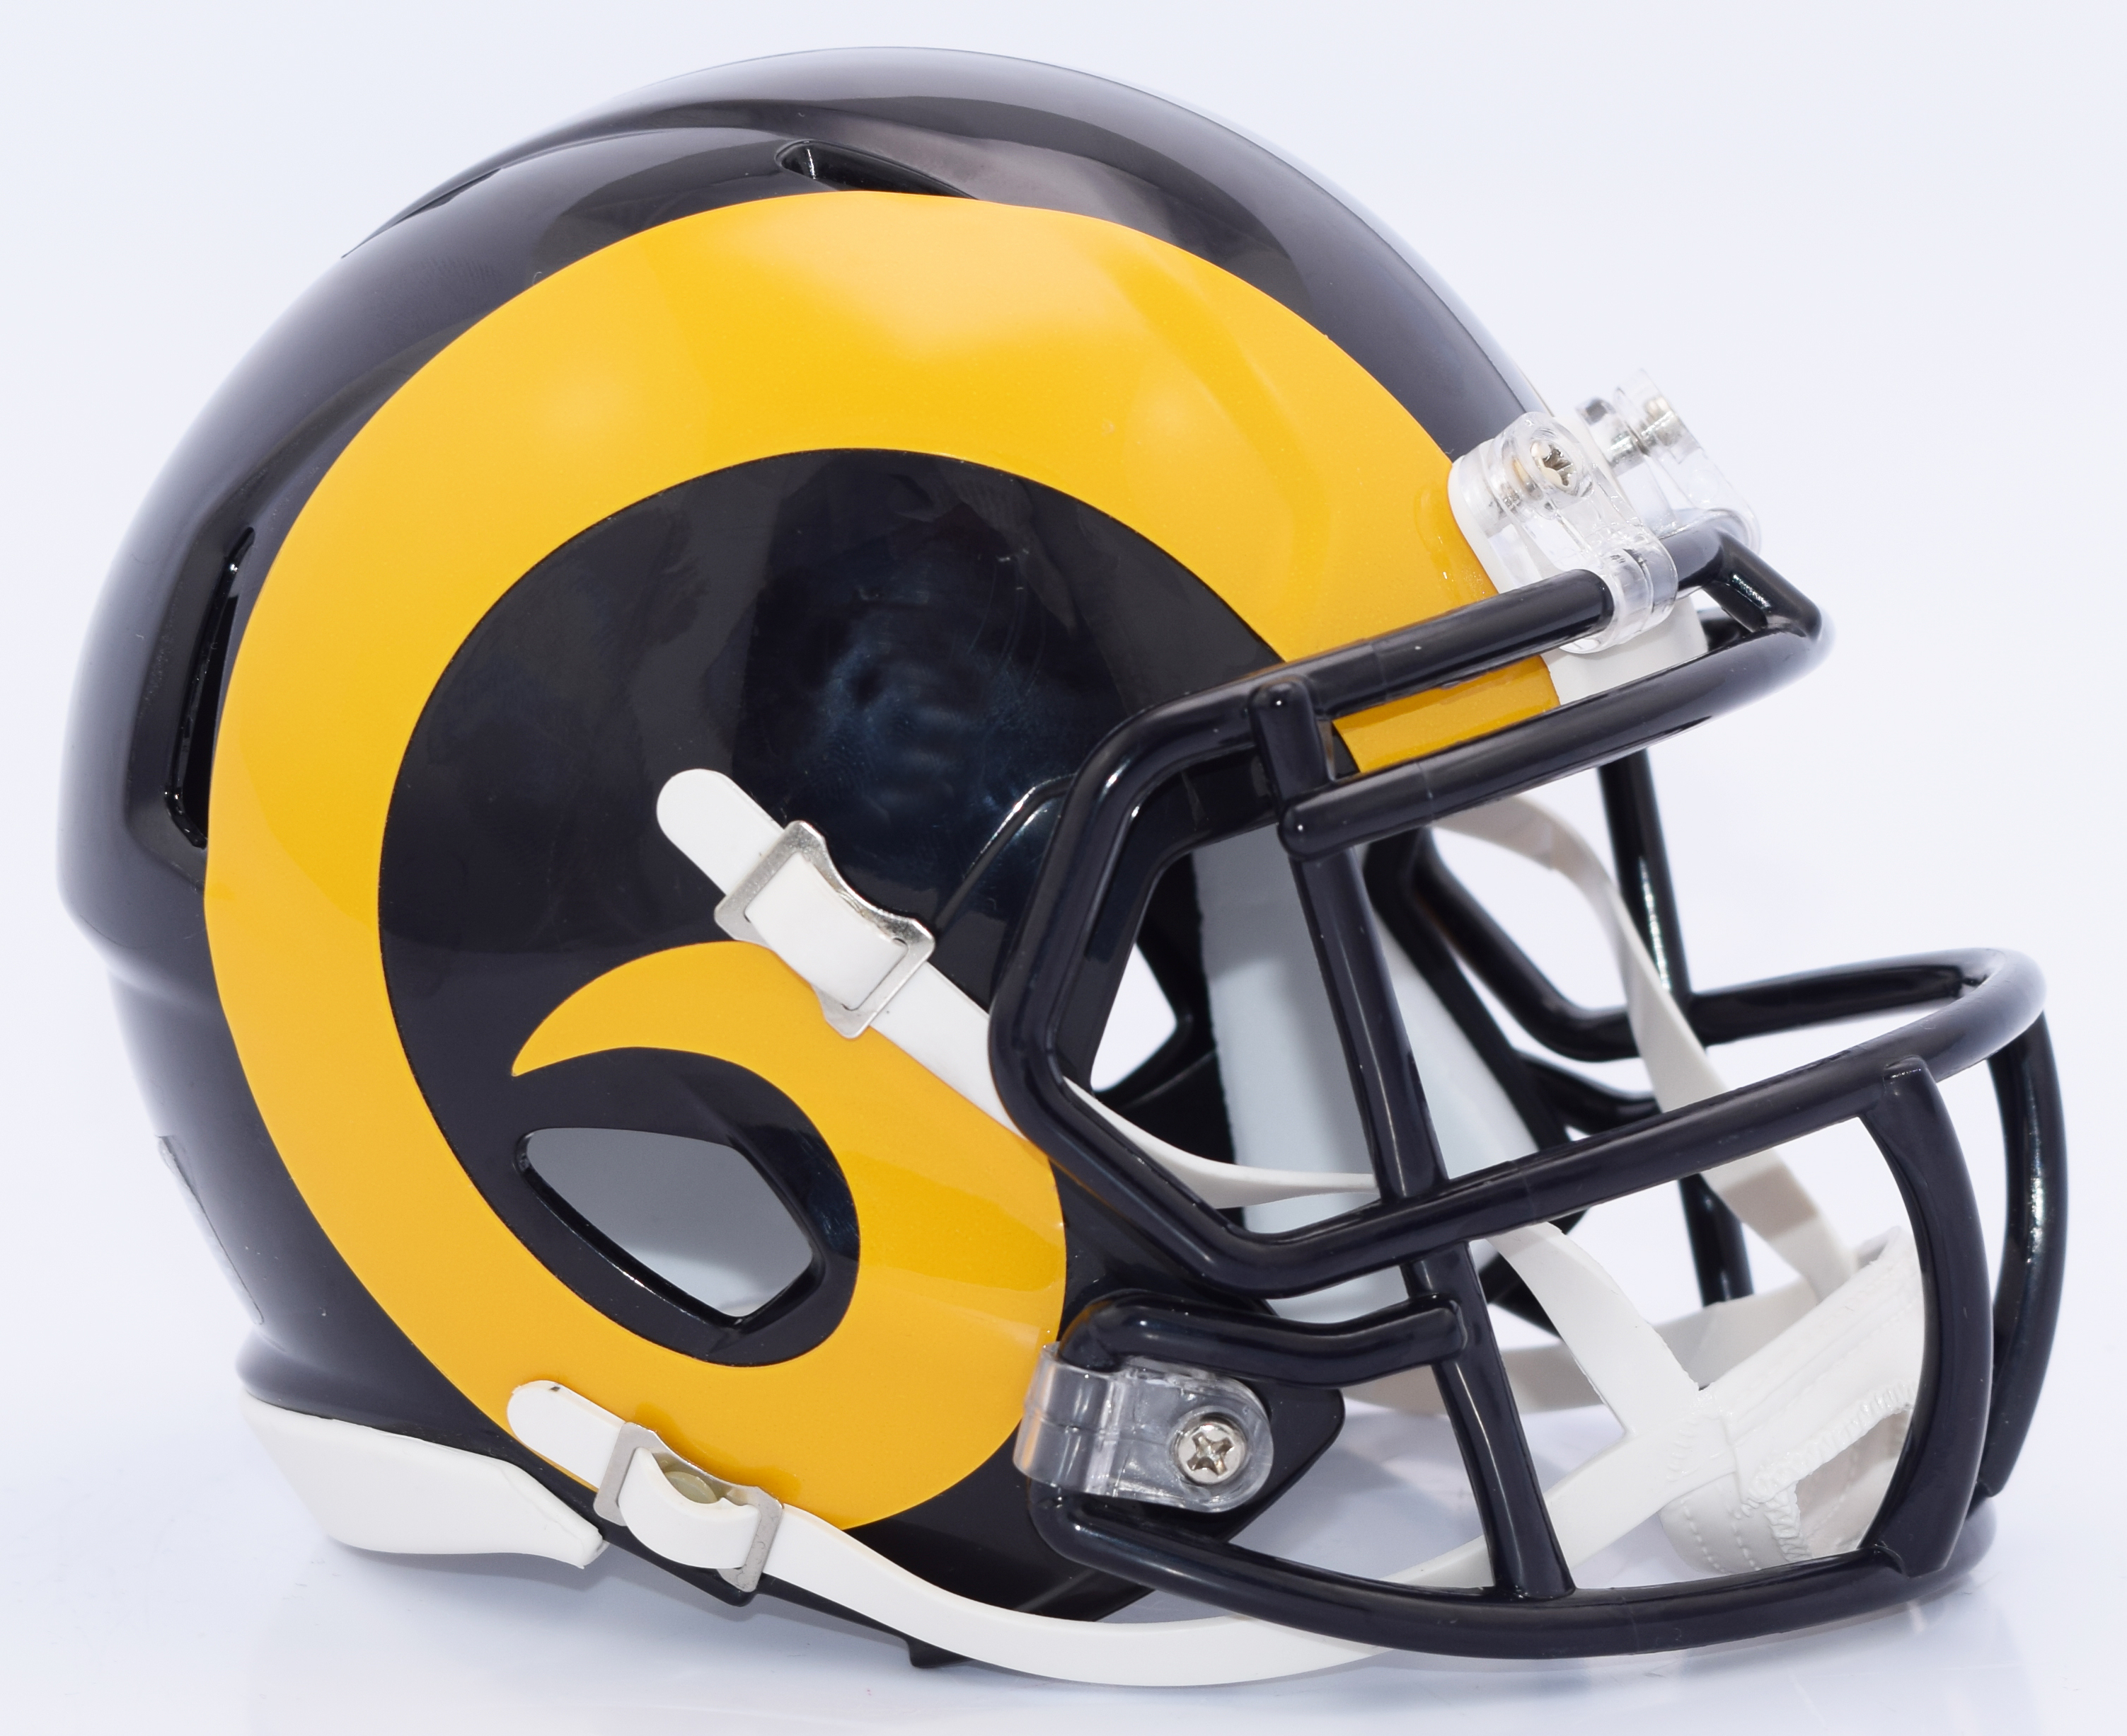 St. Louis Rams NFL Mini Speed Football Helmet <B>Yellow Horn</B>